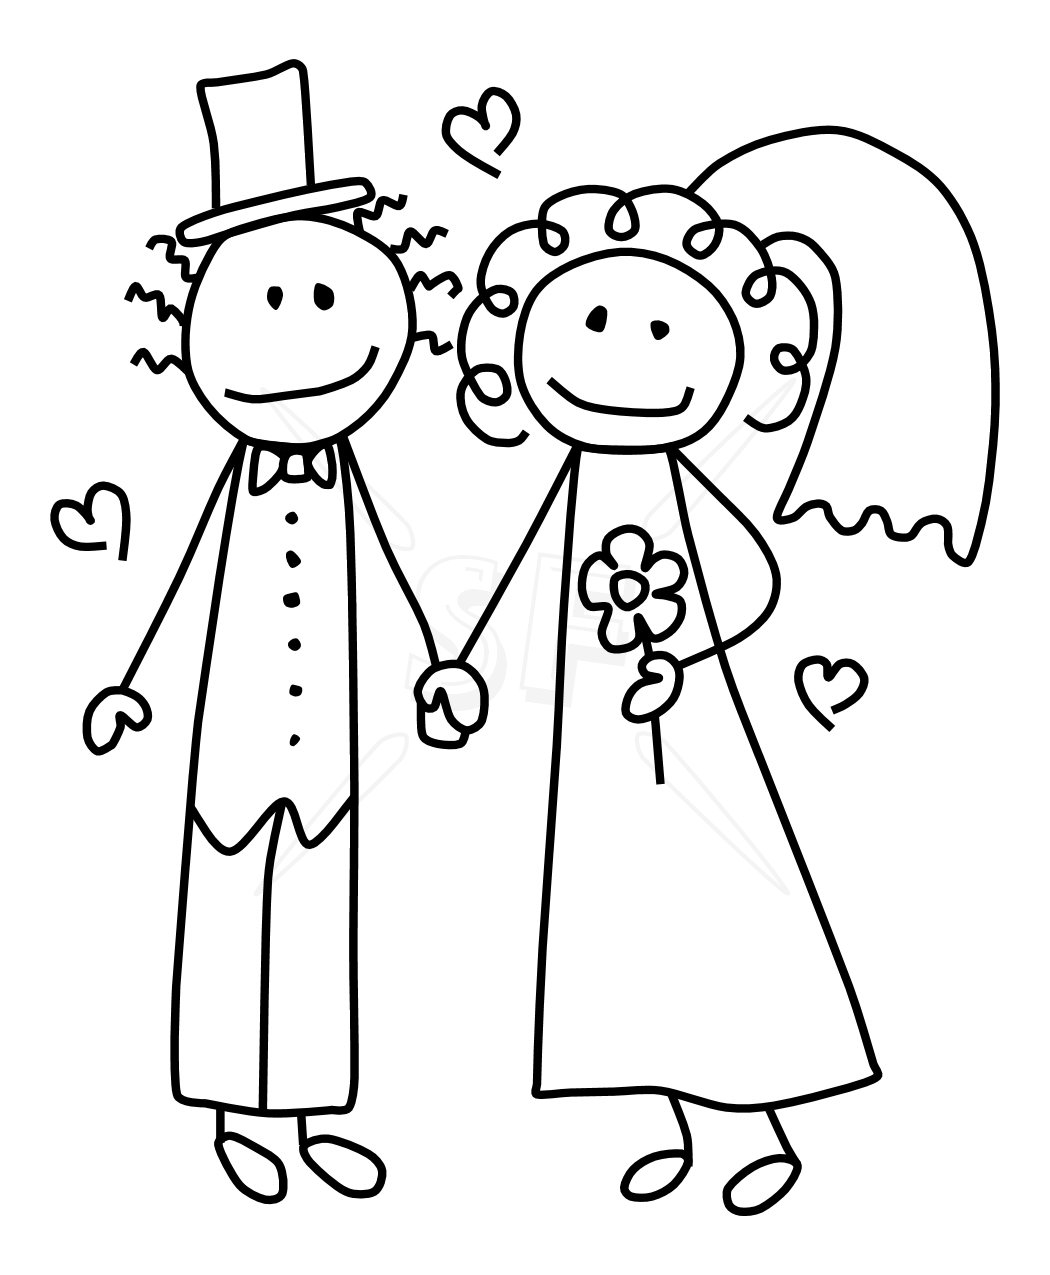 1050x1275 Cute Bride Amp Groom Stick Figures Clip Art Stick Figures Clip Art